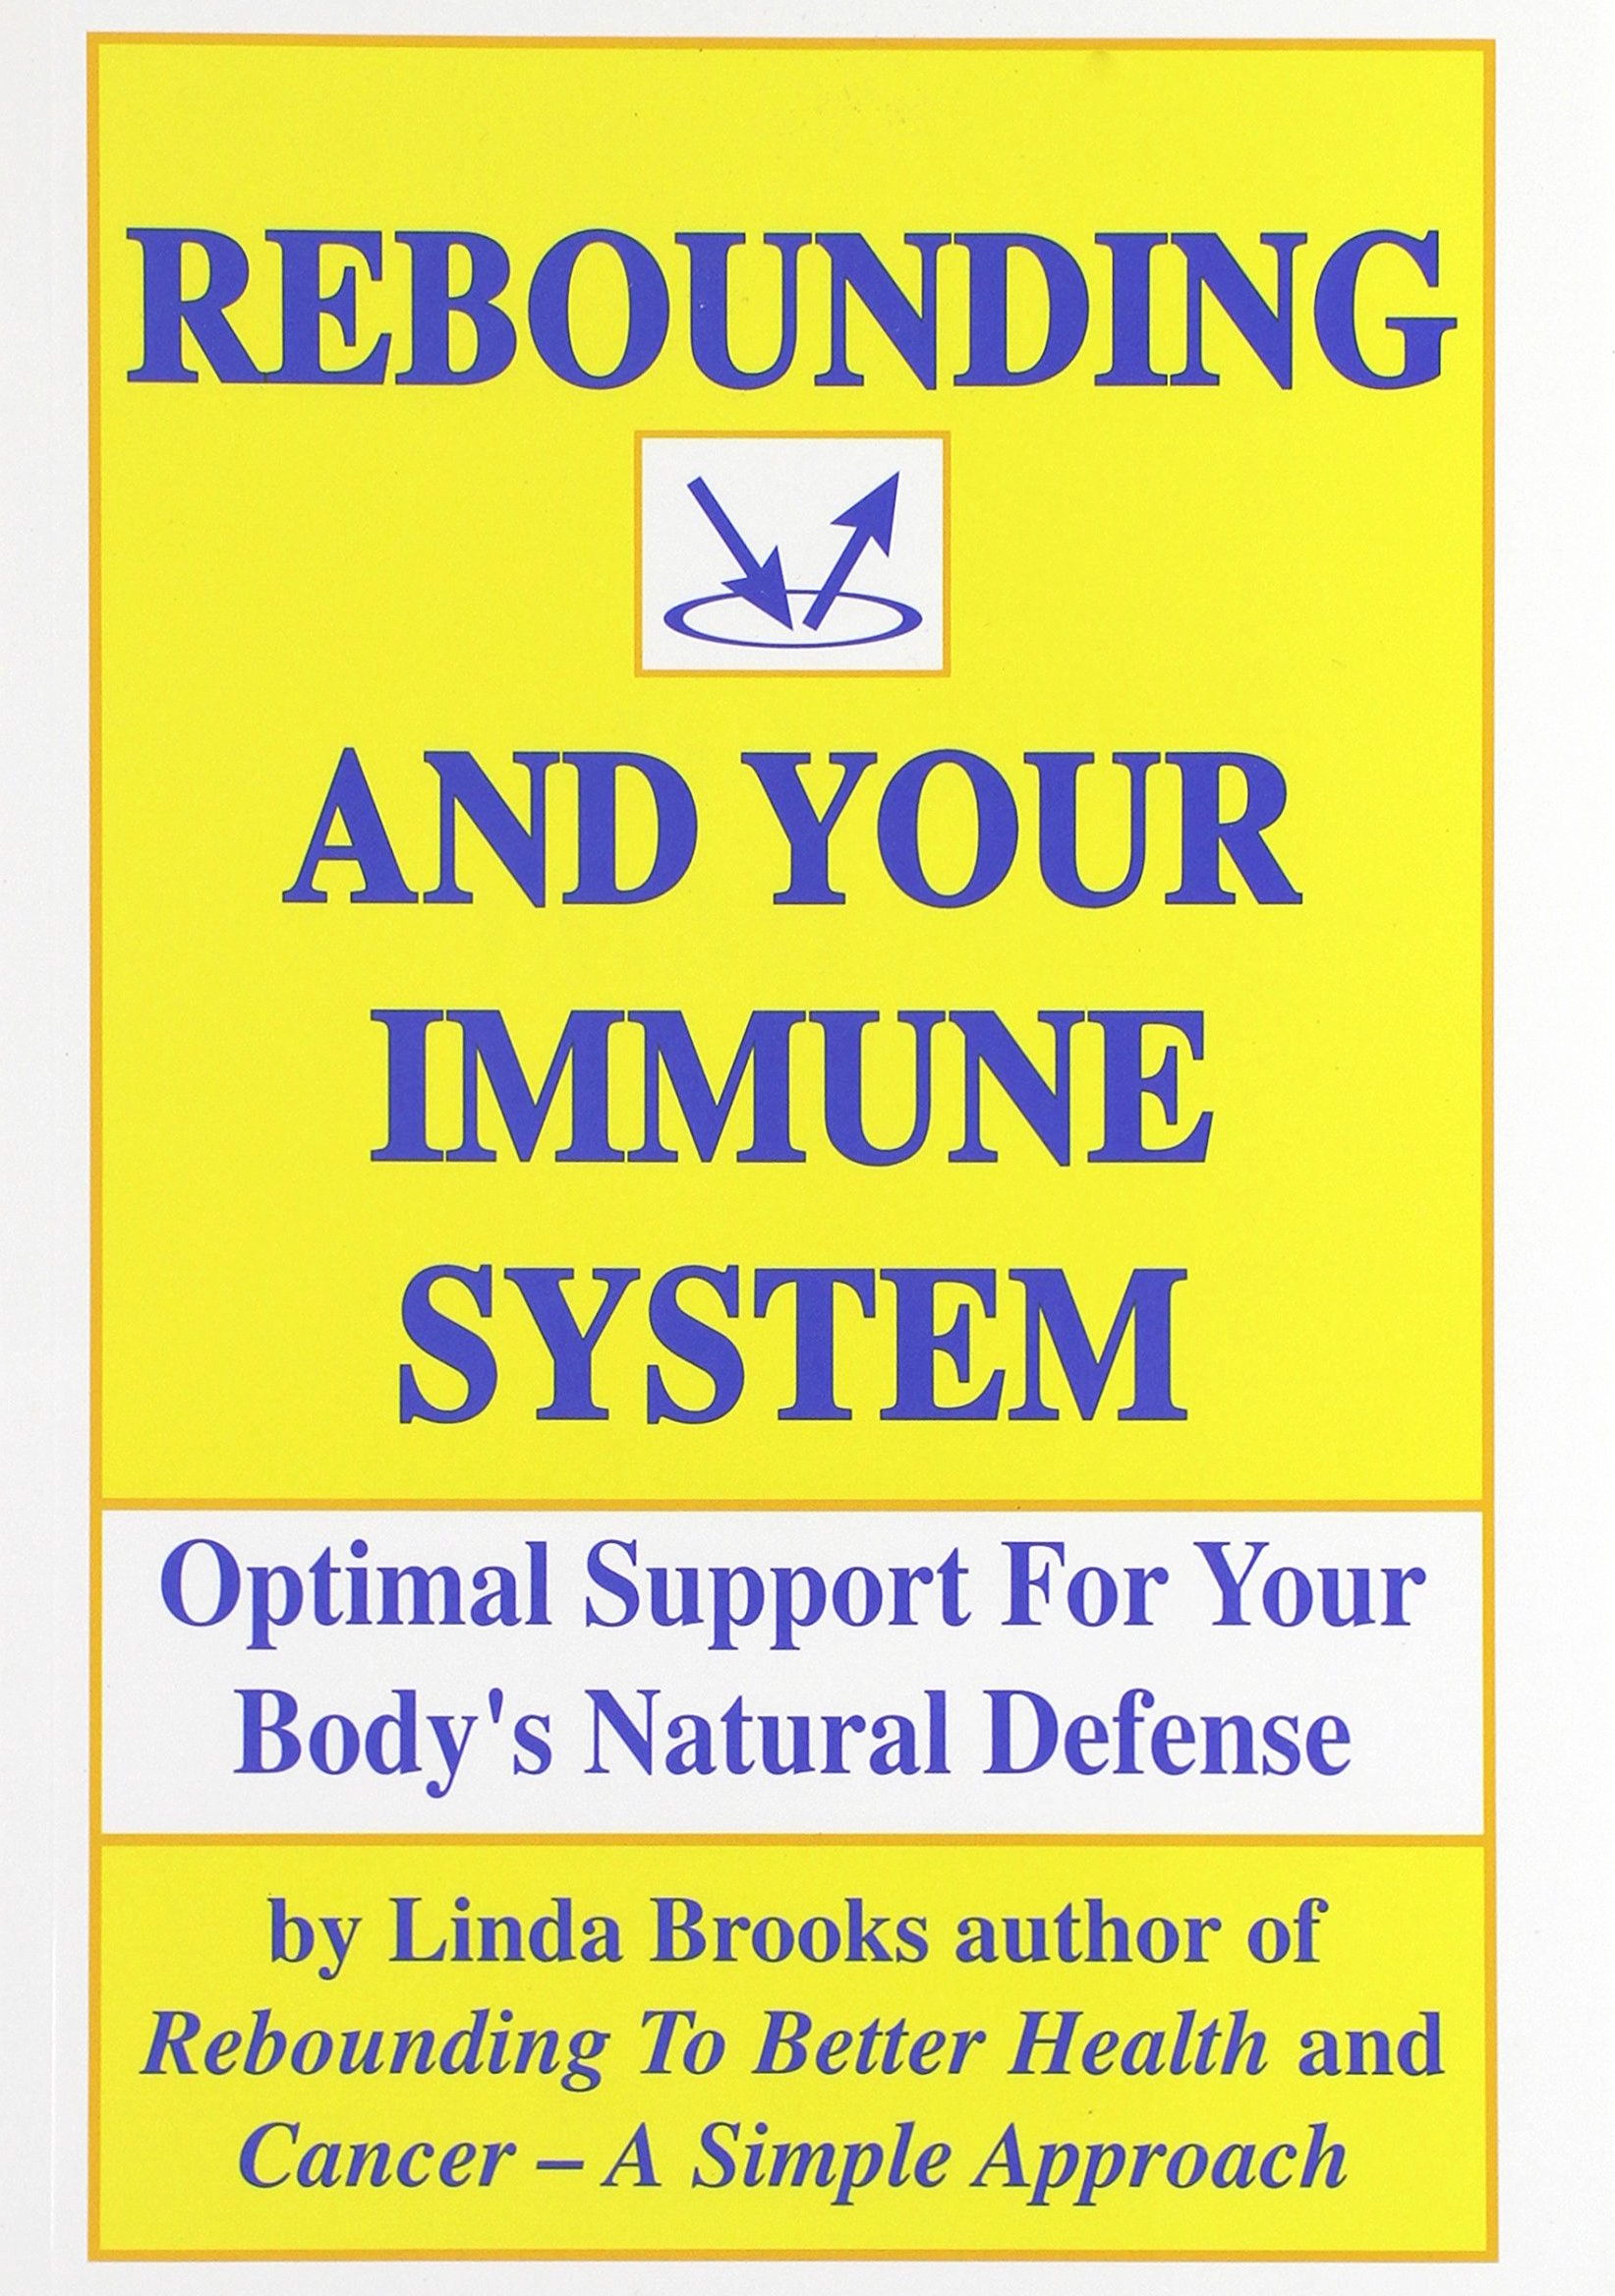 Rebounding and your immune system - By Linda BrooksYour immune system is designed to keep you healthy, no matter what. It can defend you against cancer or help you heal from serious illness or the common cold.– Linda BrooksAn up-close look at your immune system. Linda explains why edema occurs and how to avoid its dangers, supporting your immune system, stress reduction, and rebounding success stories.Linda Brooks is the author of Rebounding To Better Health, Cancer A Simple Approach, and Born To Bounce. Once again she gets down to basics, teaching you how your body's defense system works and how rebounding can help your body heal itself.